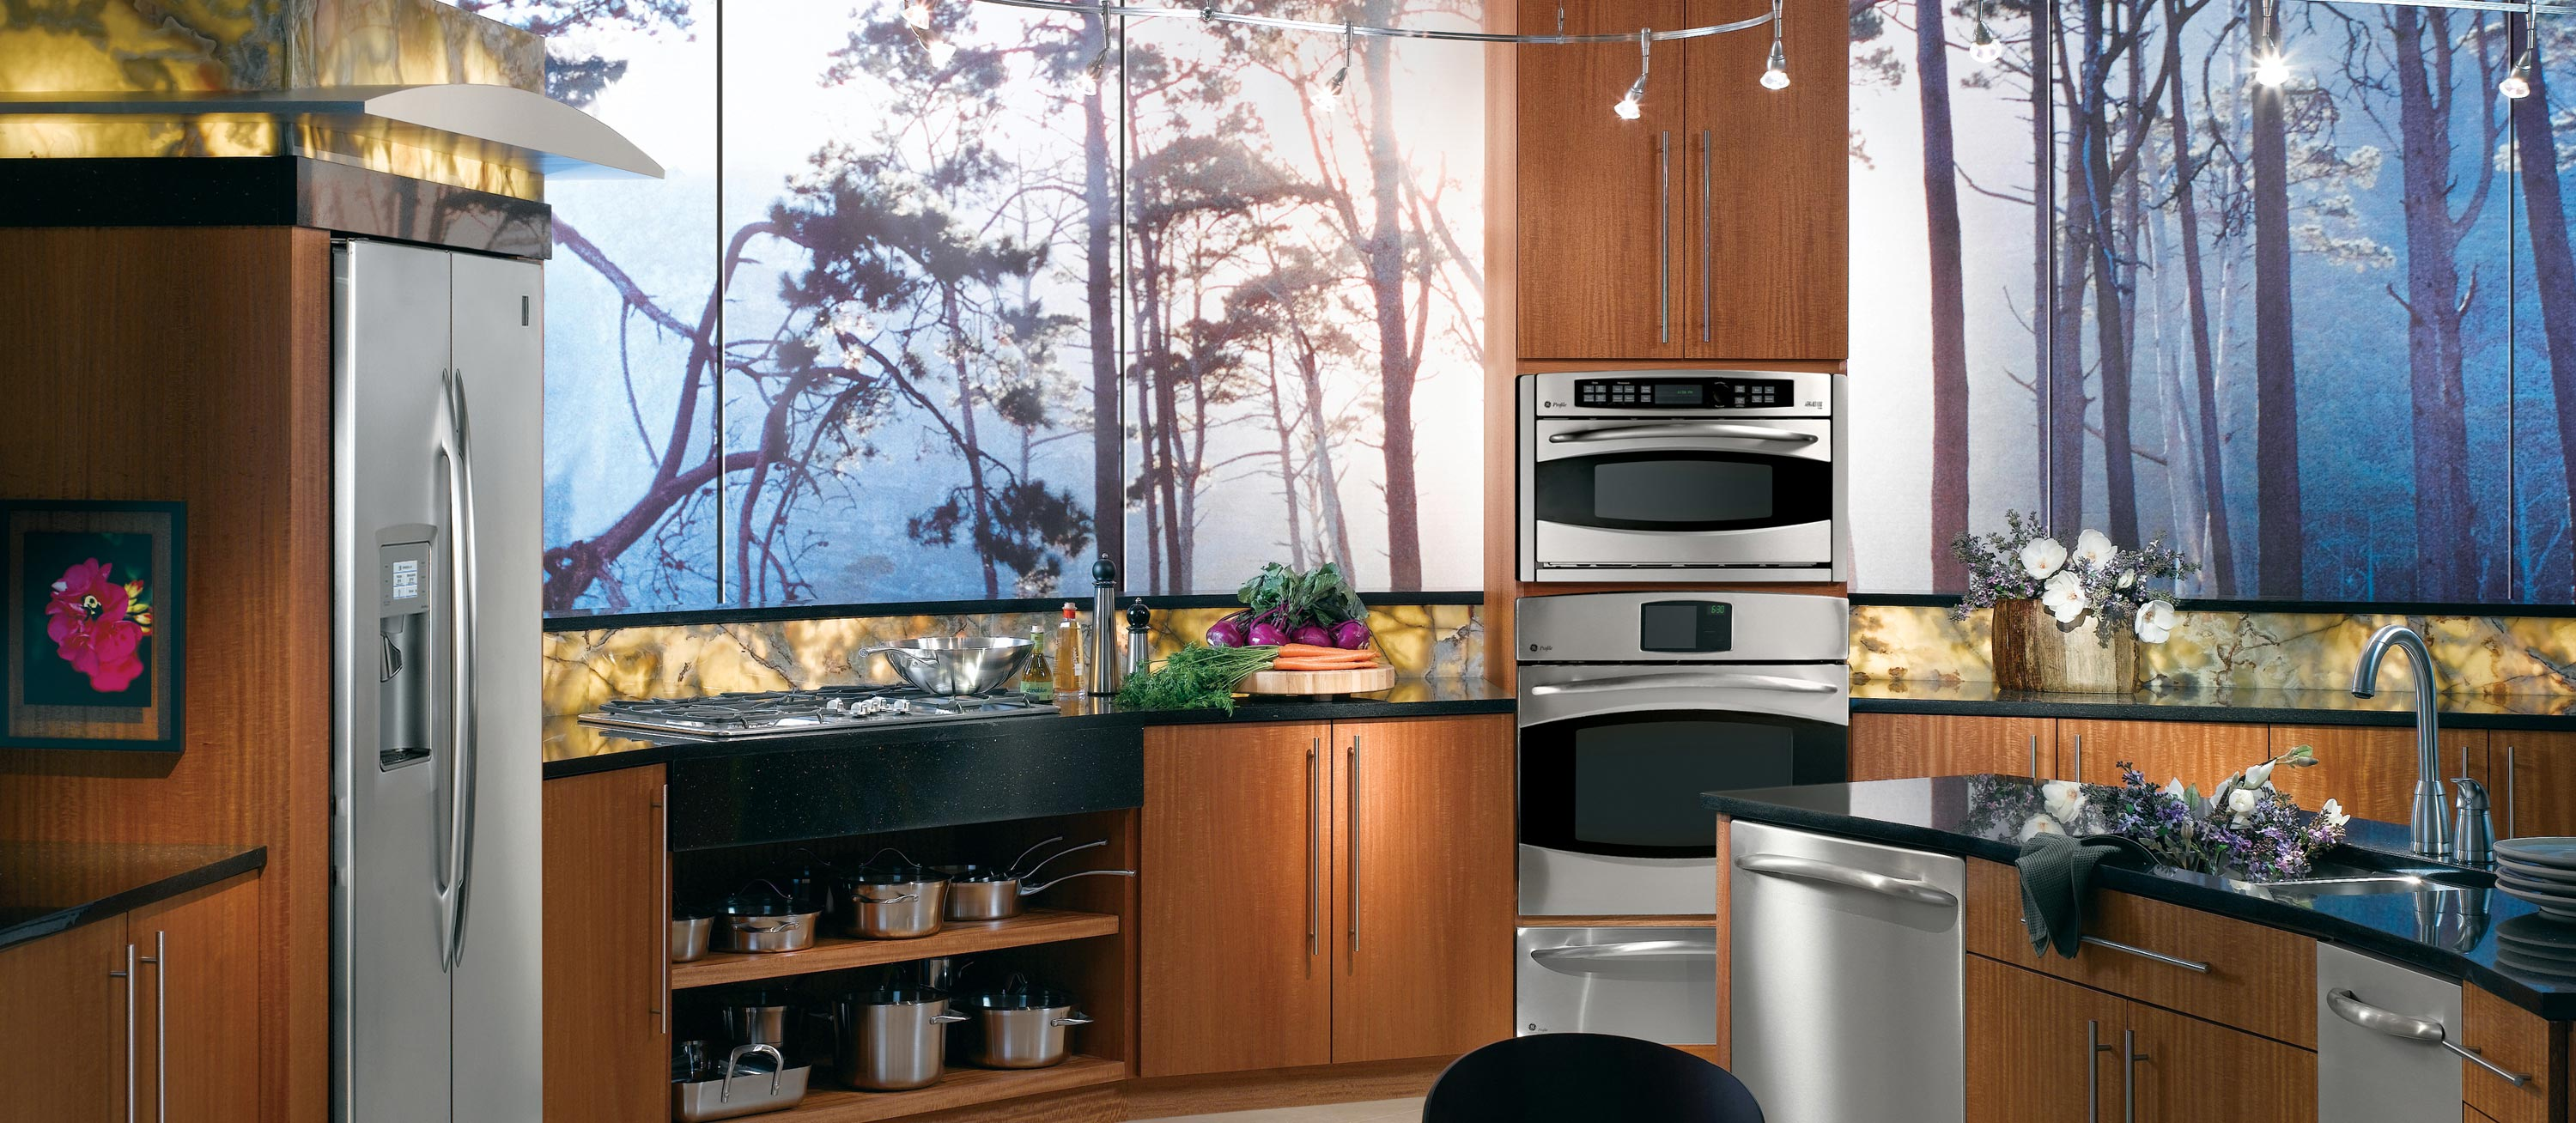 ge kitchen appliances hotels with kitchens